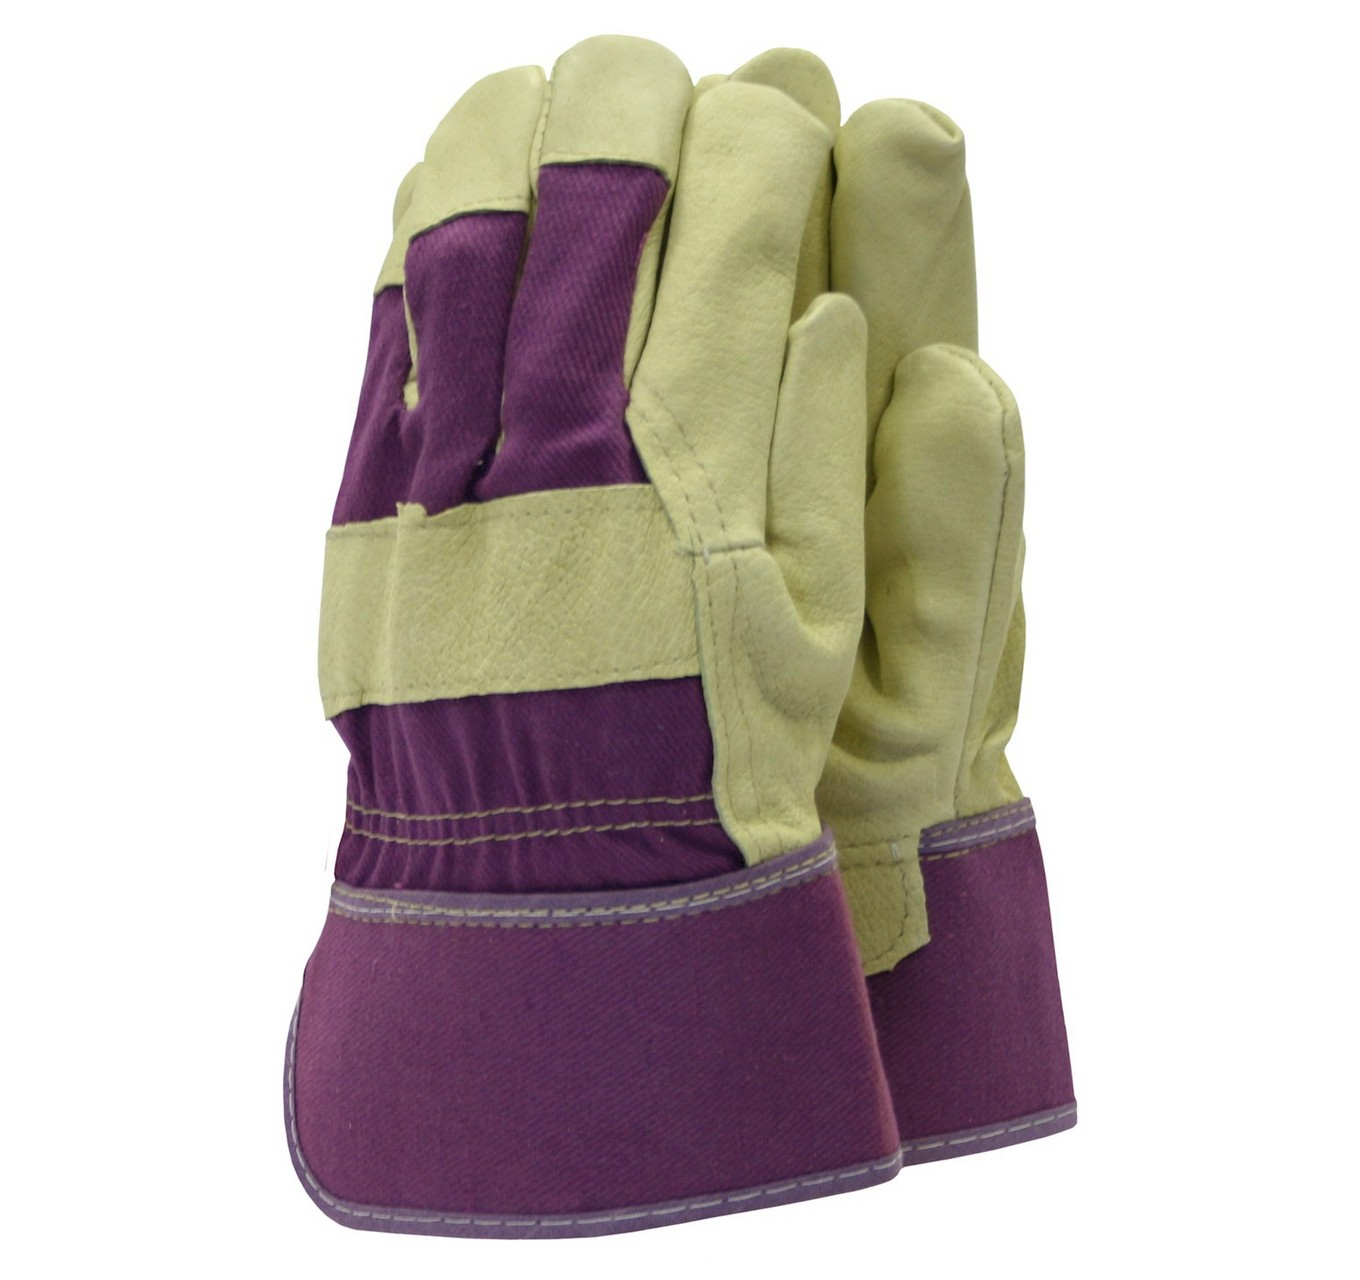 Washable Leather Rigger Glove